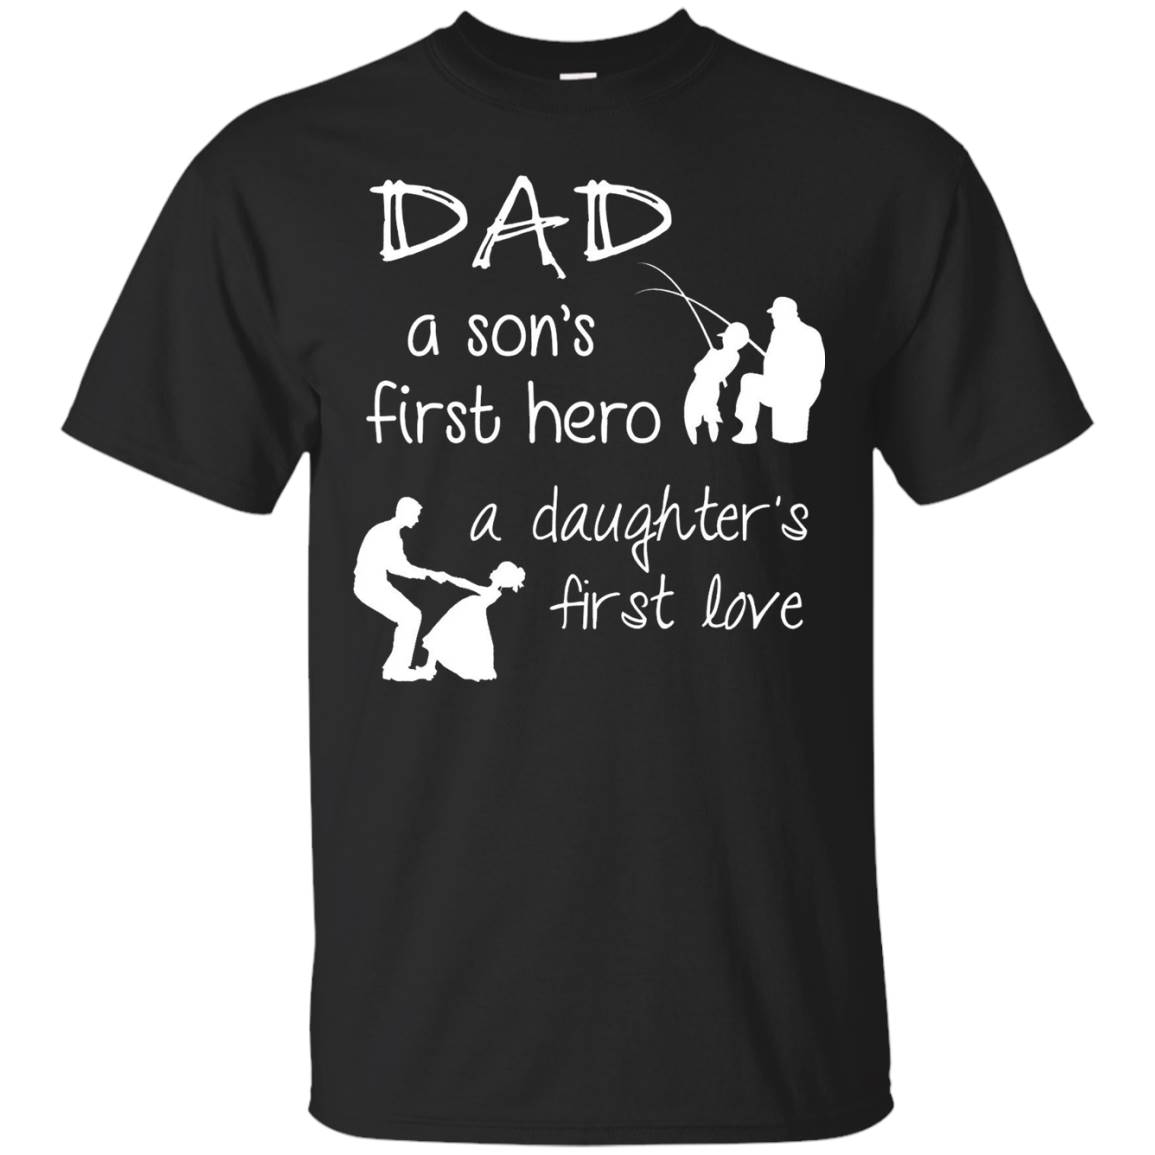 A son's first hero a daughter's first love t shirt